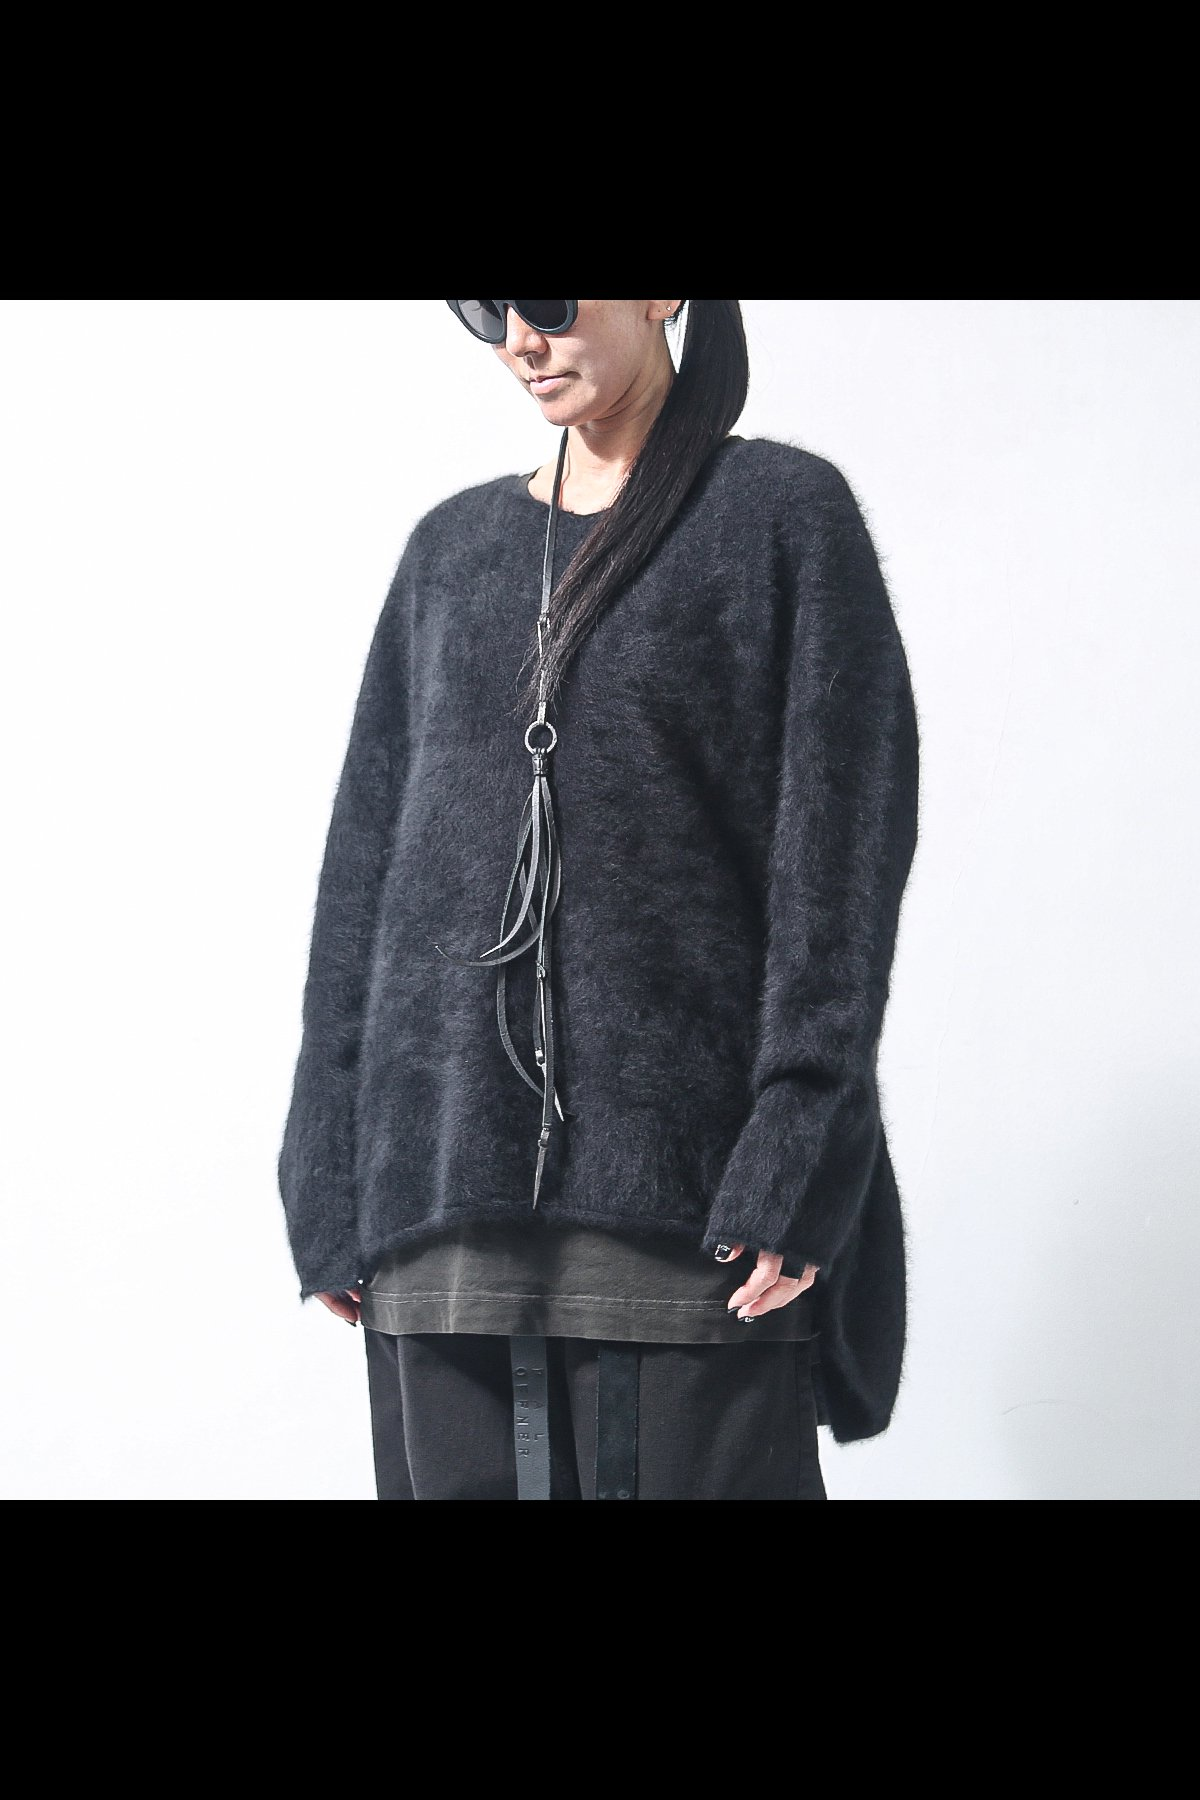 <img class='new_mark_img1' src='https://img.shop-pro.jp/img/new/icons8.gif' style='border:none;display:inline;margin:0px;padding:0px;width:auto;' />RACOON V NECK MID KNIT 141 7001_BLACK